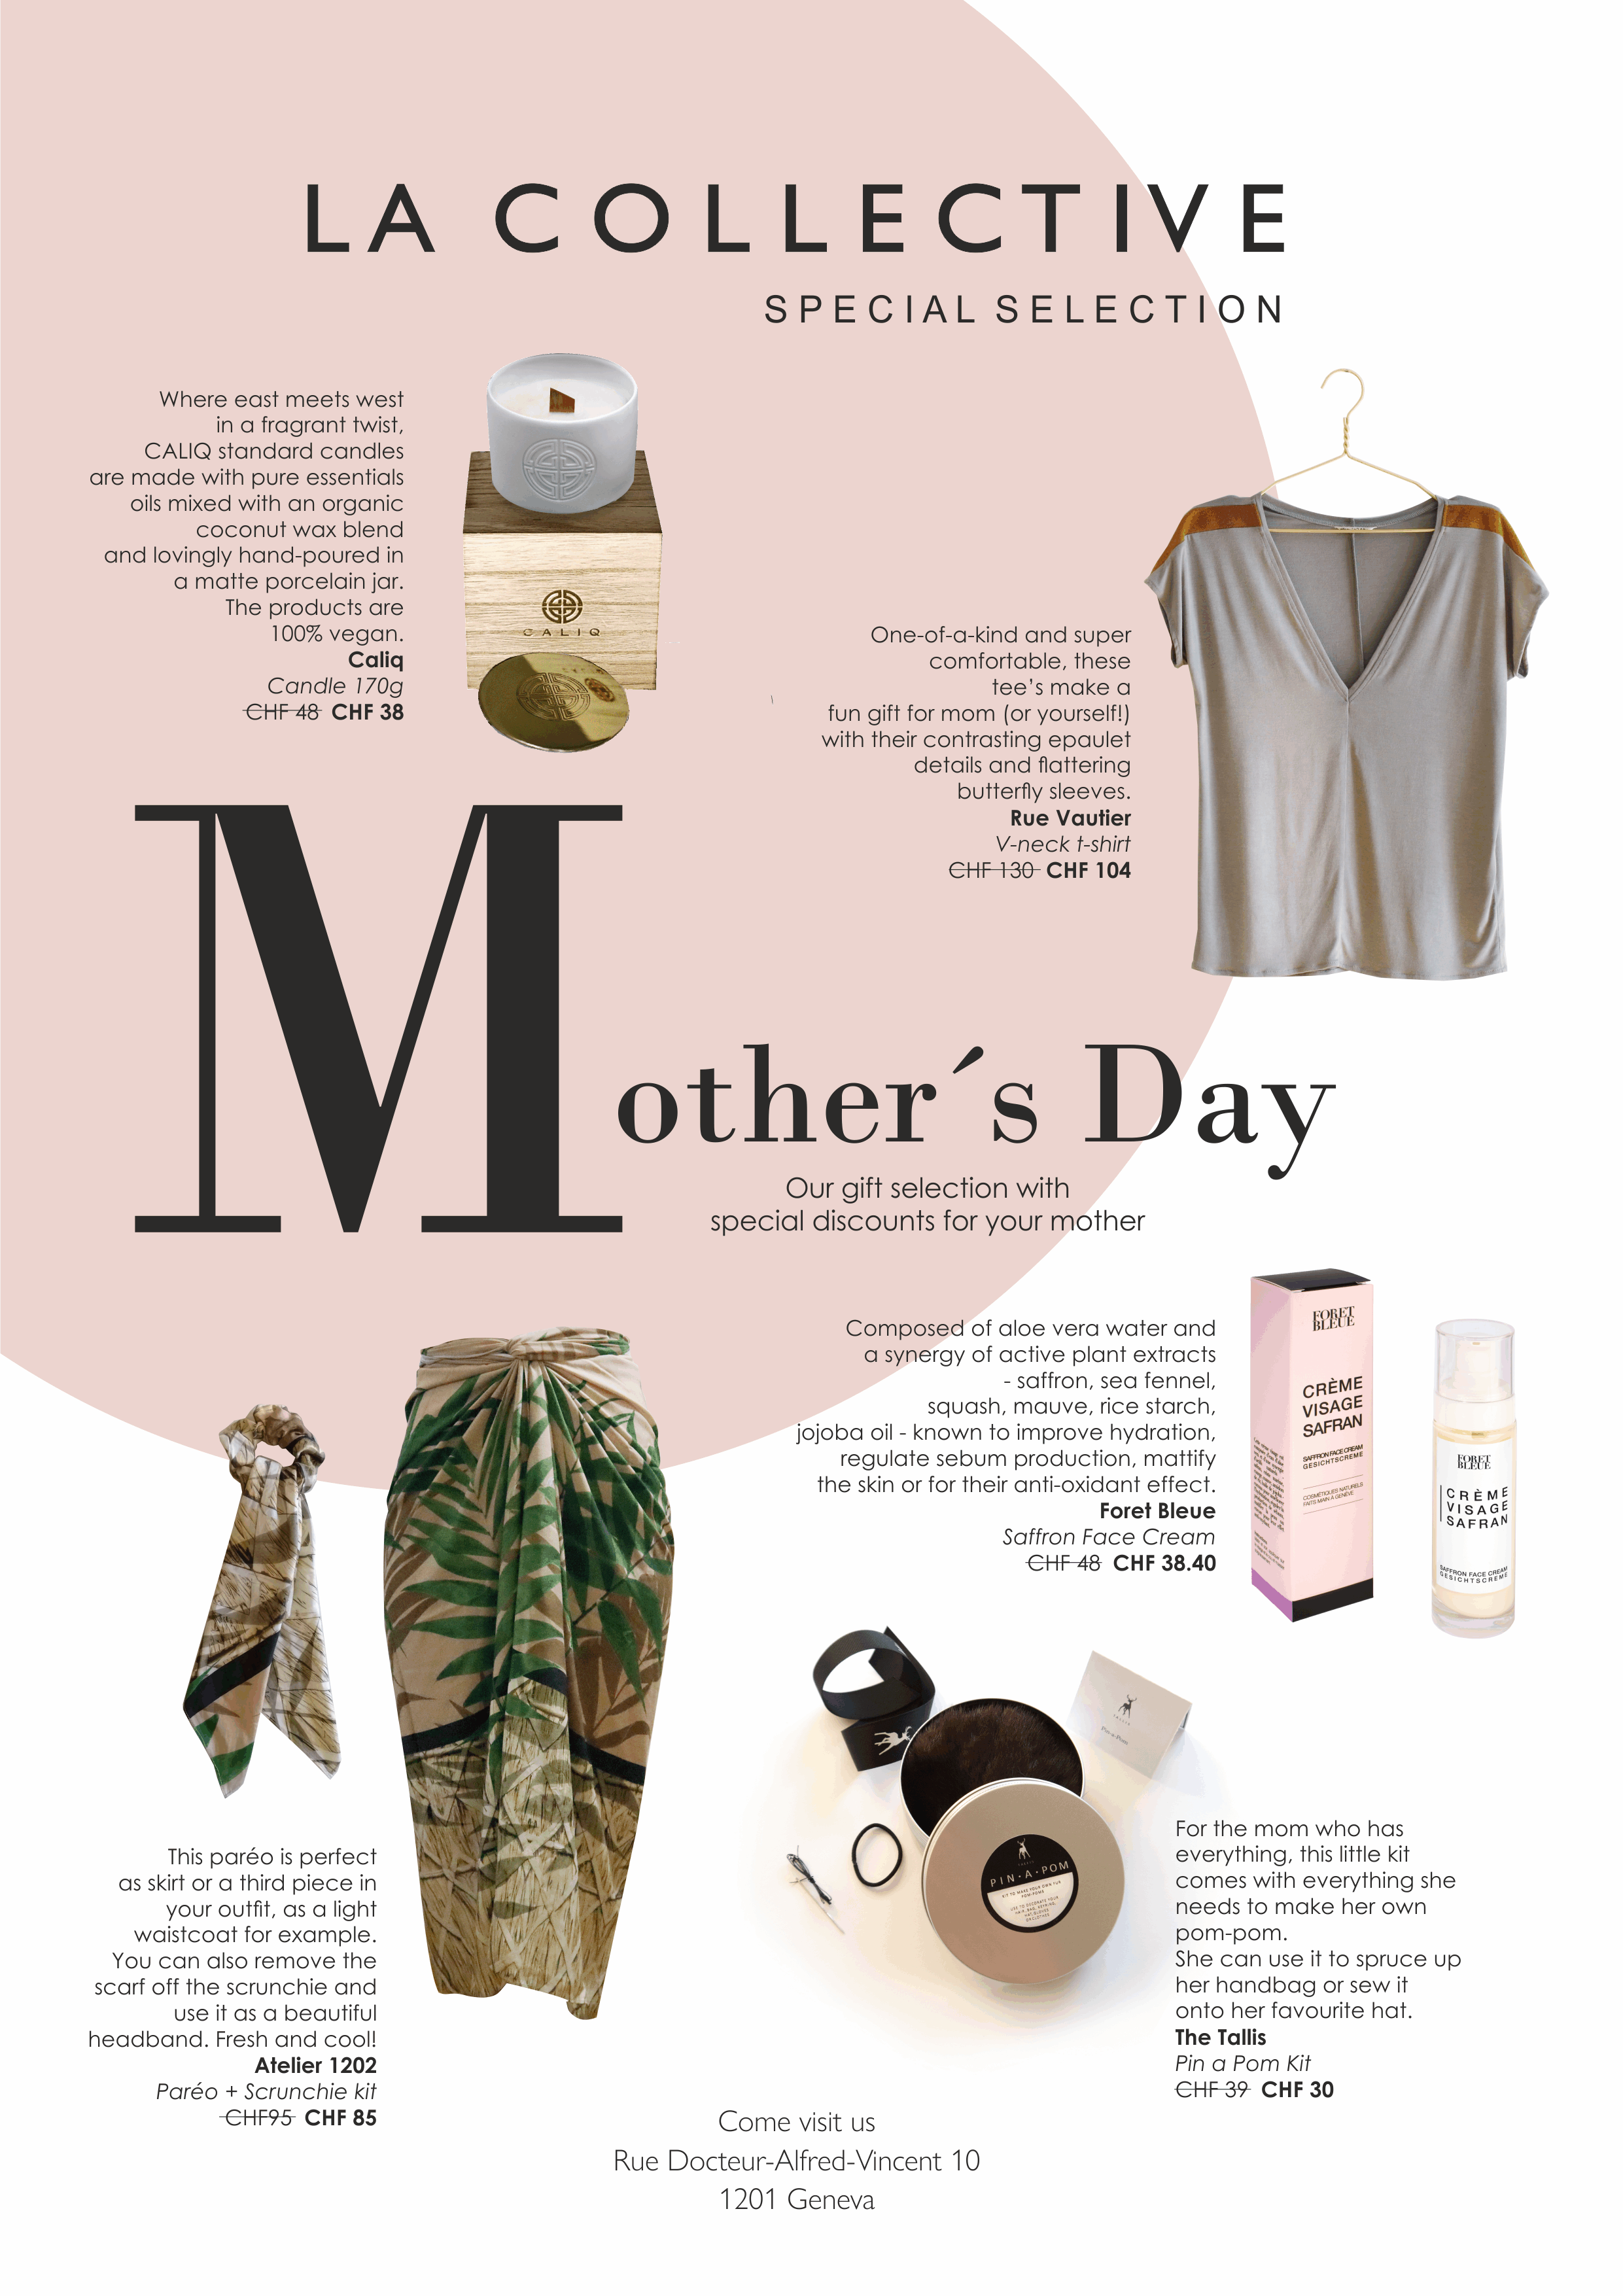 Mother's Dayat LA COLLECTIVE - This year for Mother's Day we're inviting you to discover some special promotions at La Collective Concept Boutique where our co-brands are also presenting some amazing gift ideas for this season. We're looking forward to seeing you there!RUE DOCTEUR ALFRED VINCENT 101201 GENEVA